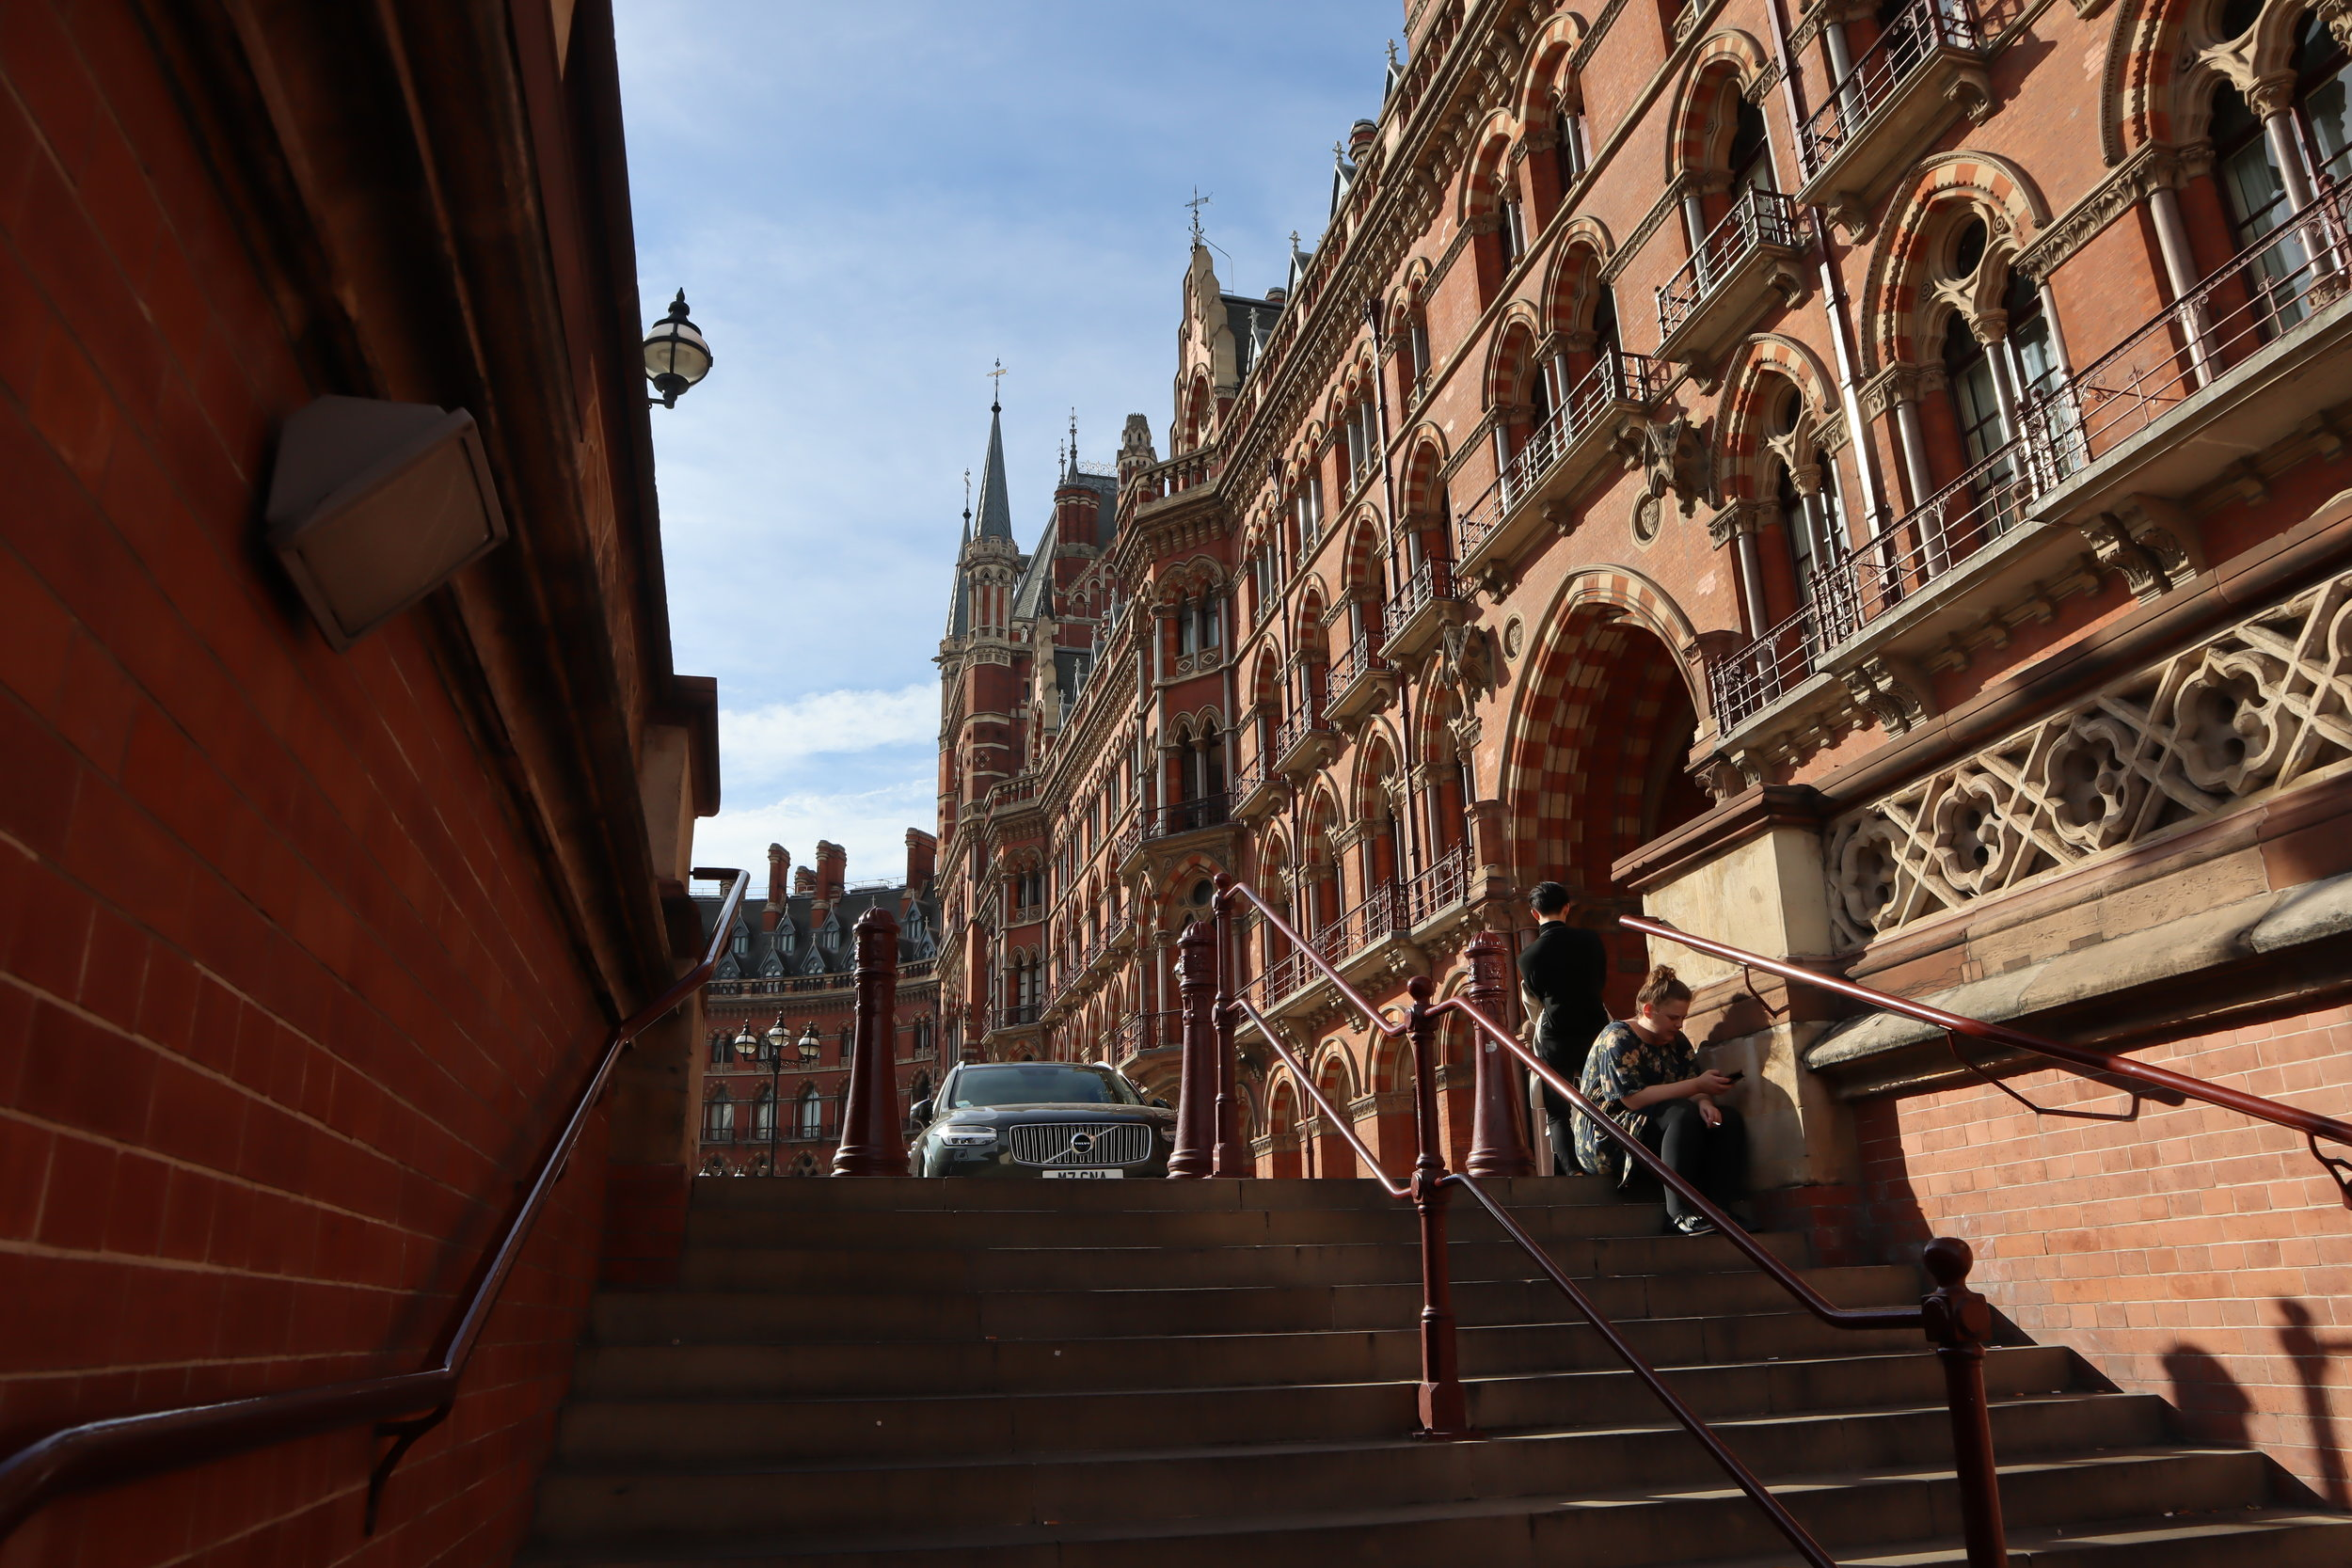 St. Pancras Renaissance Hotel London – Steps from tube station